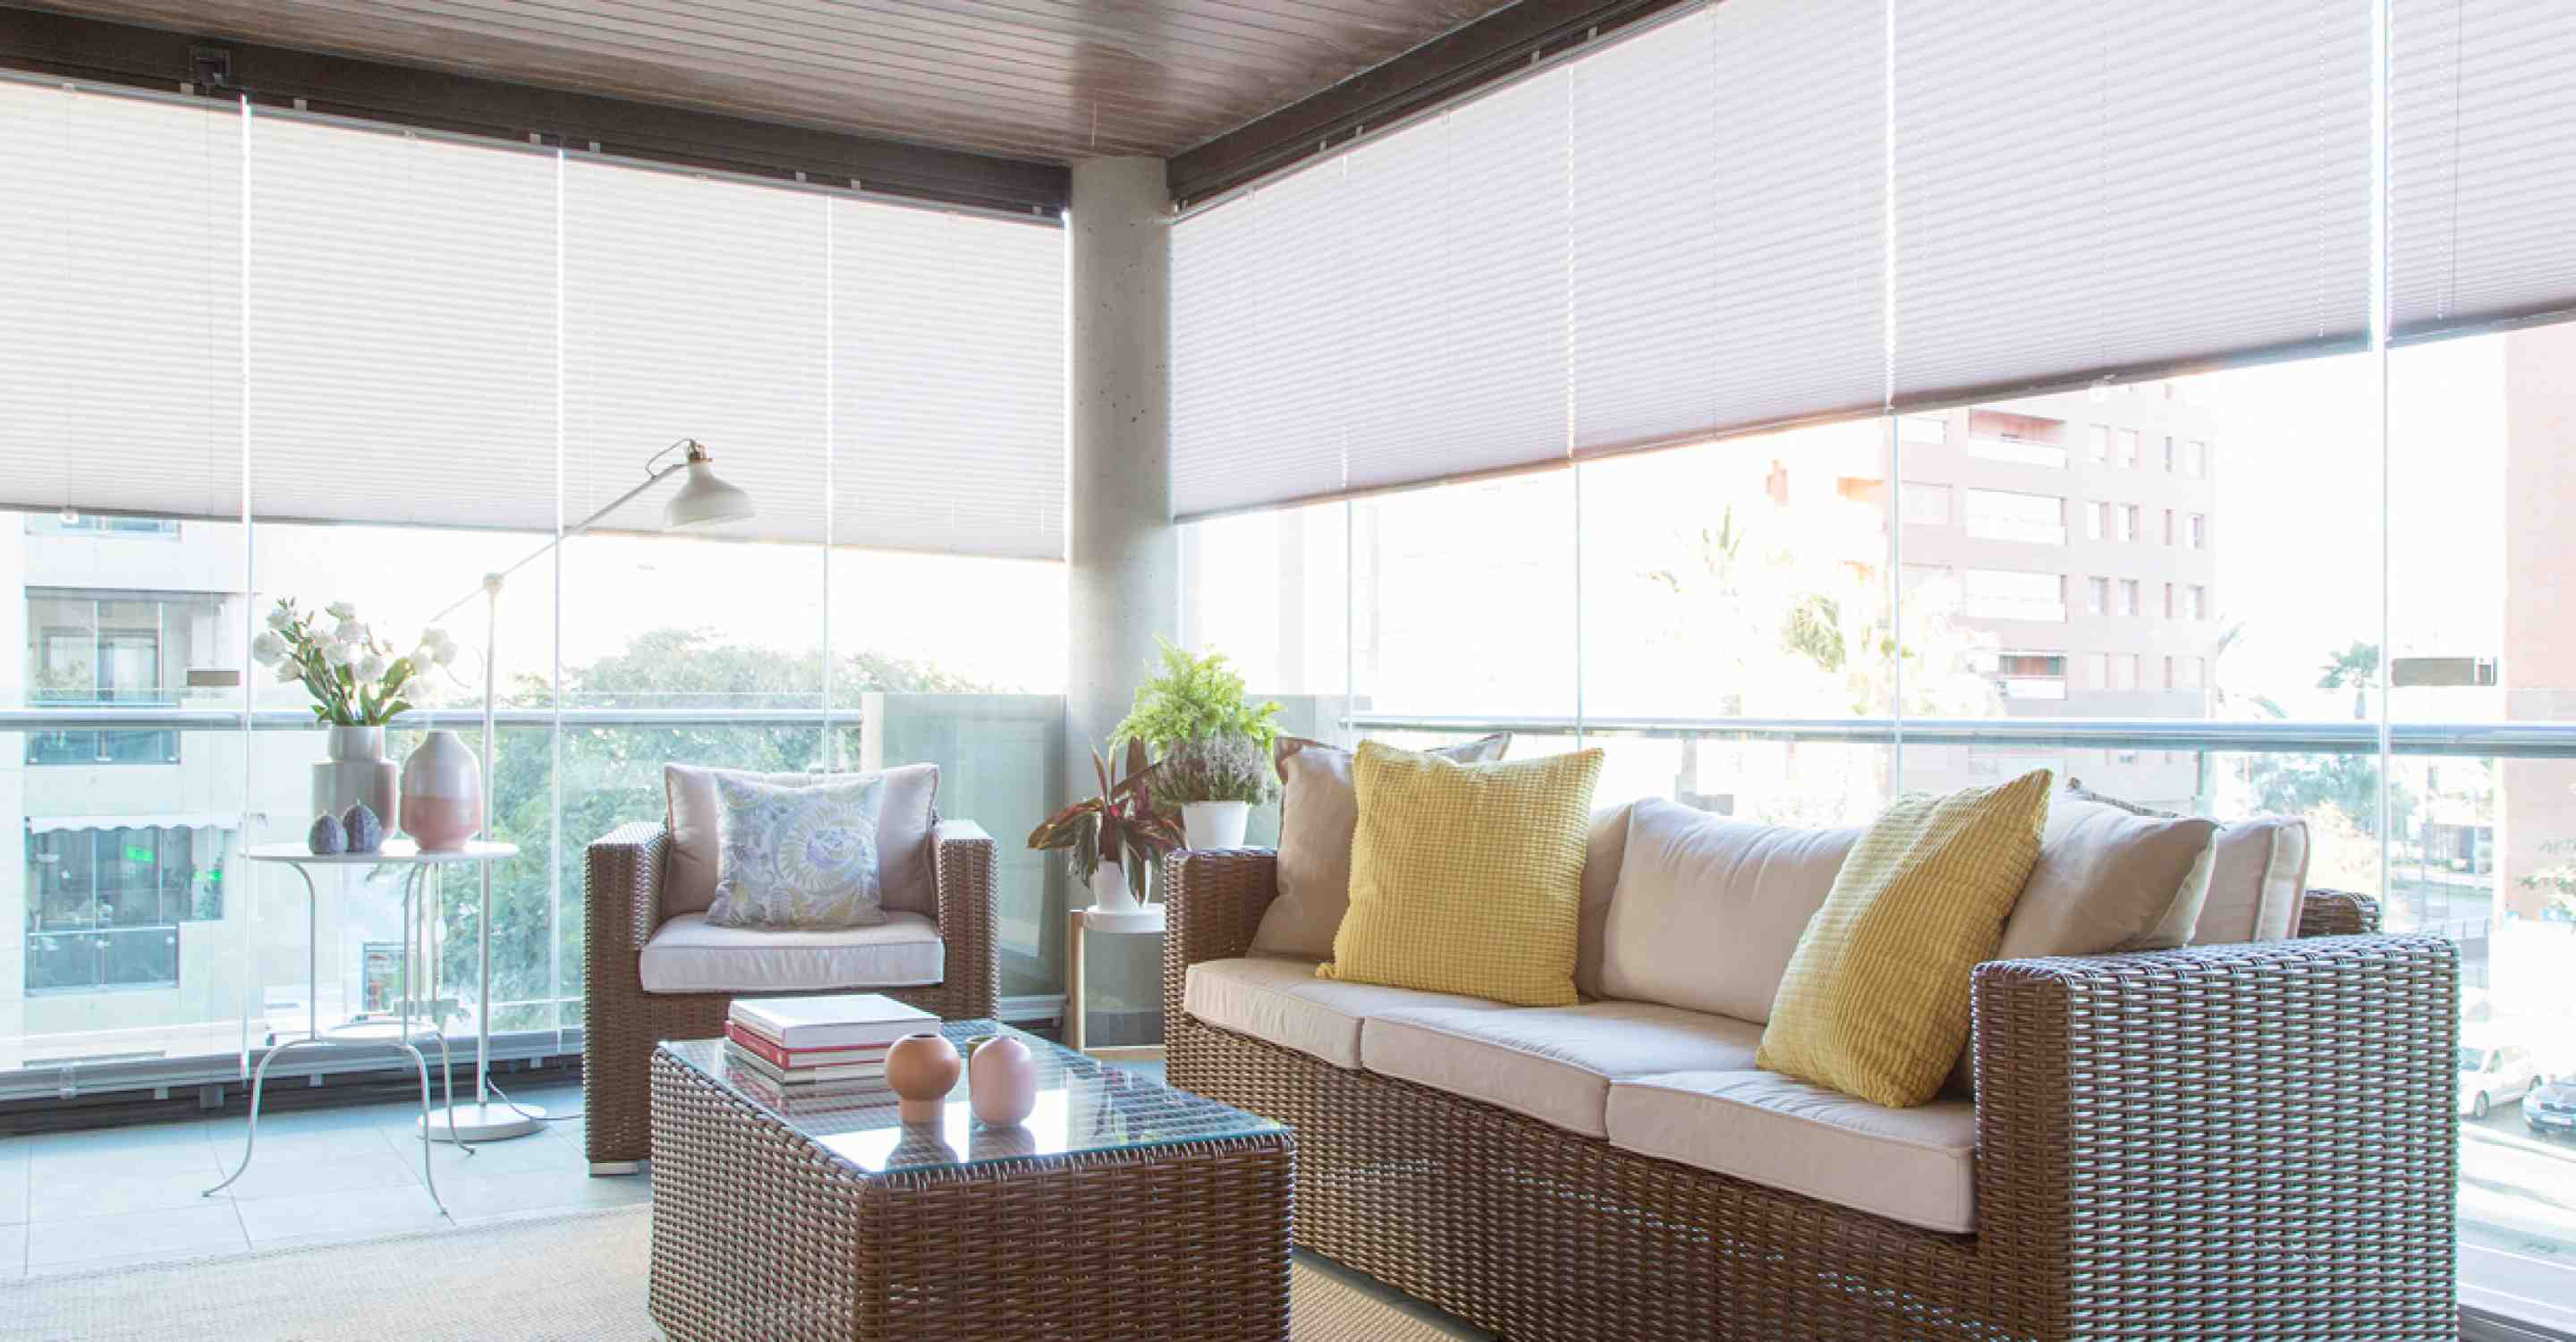 Lumon Glass Curtains for Balconies